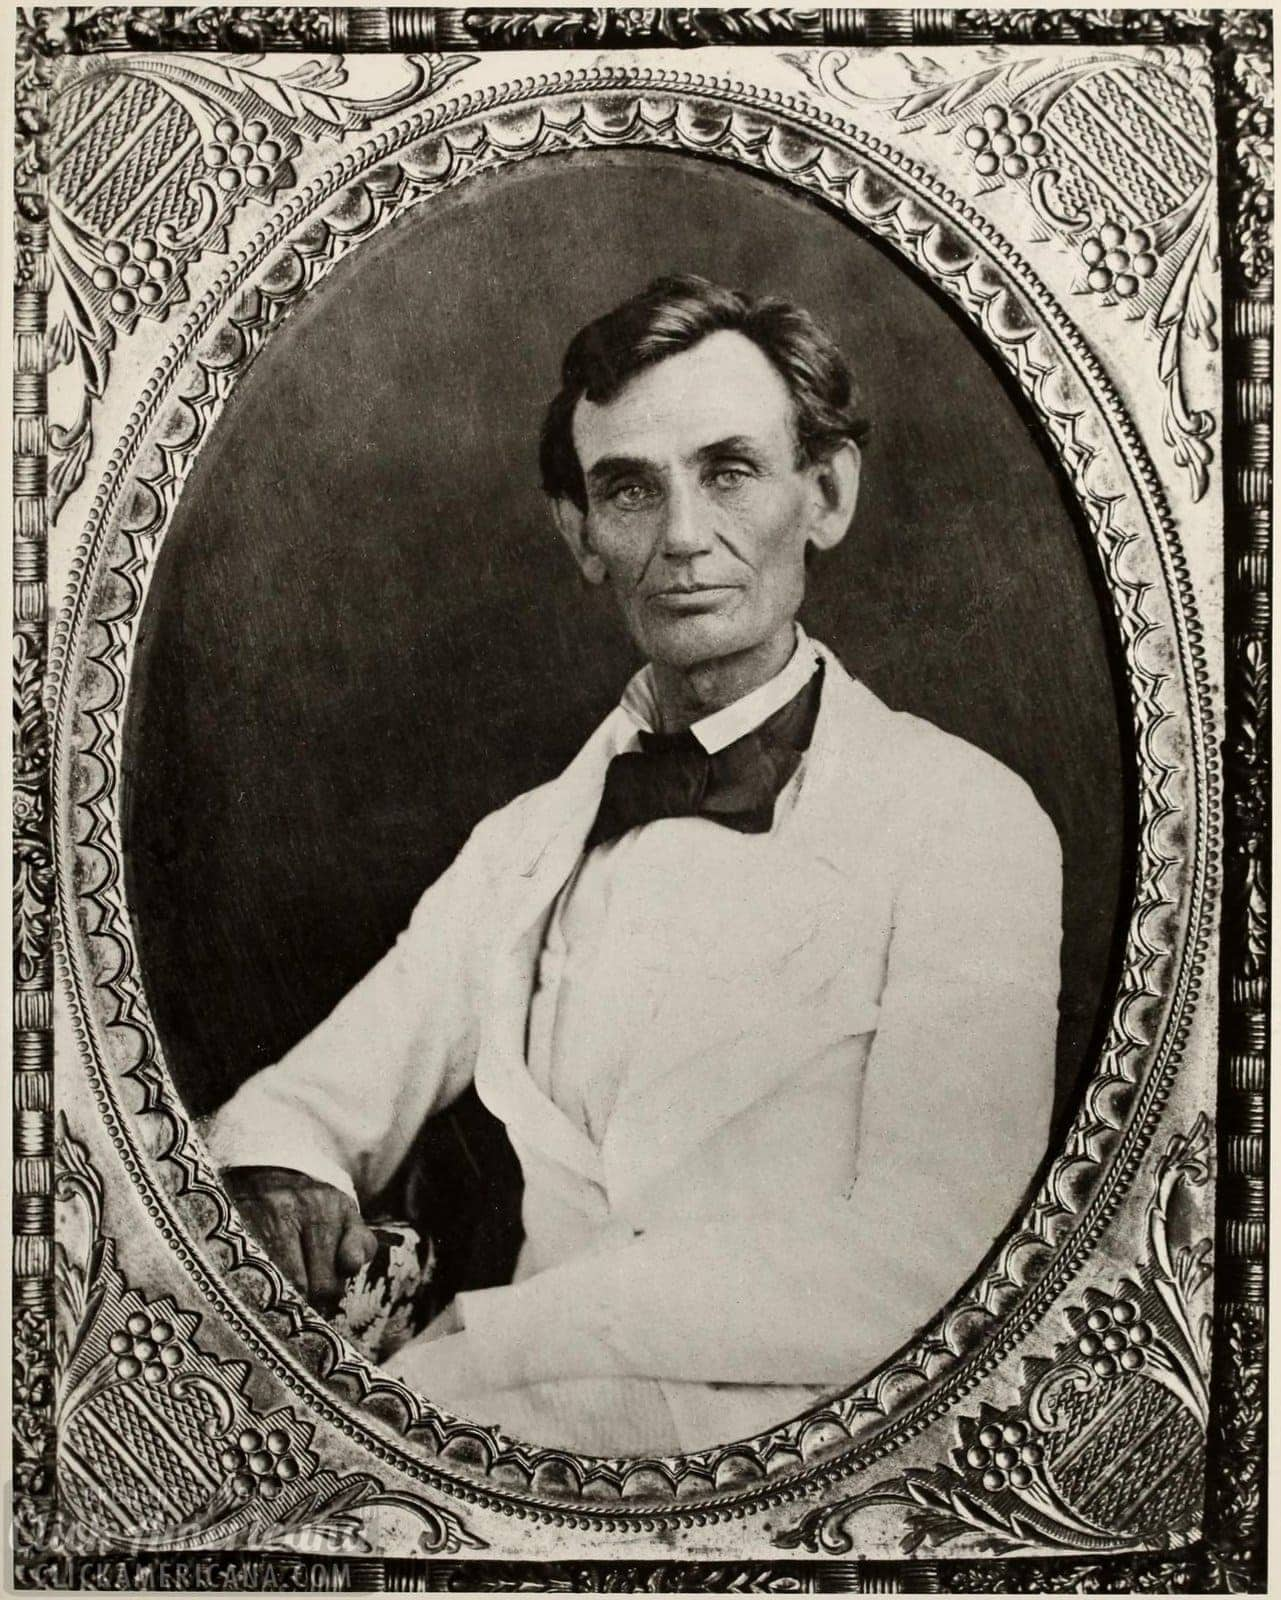 Antique portrait of Abraham Lincoln without his beard